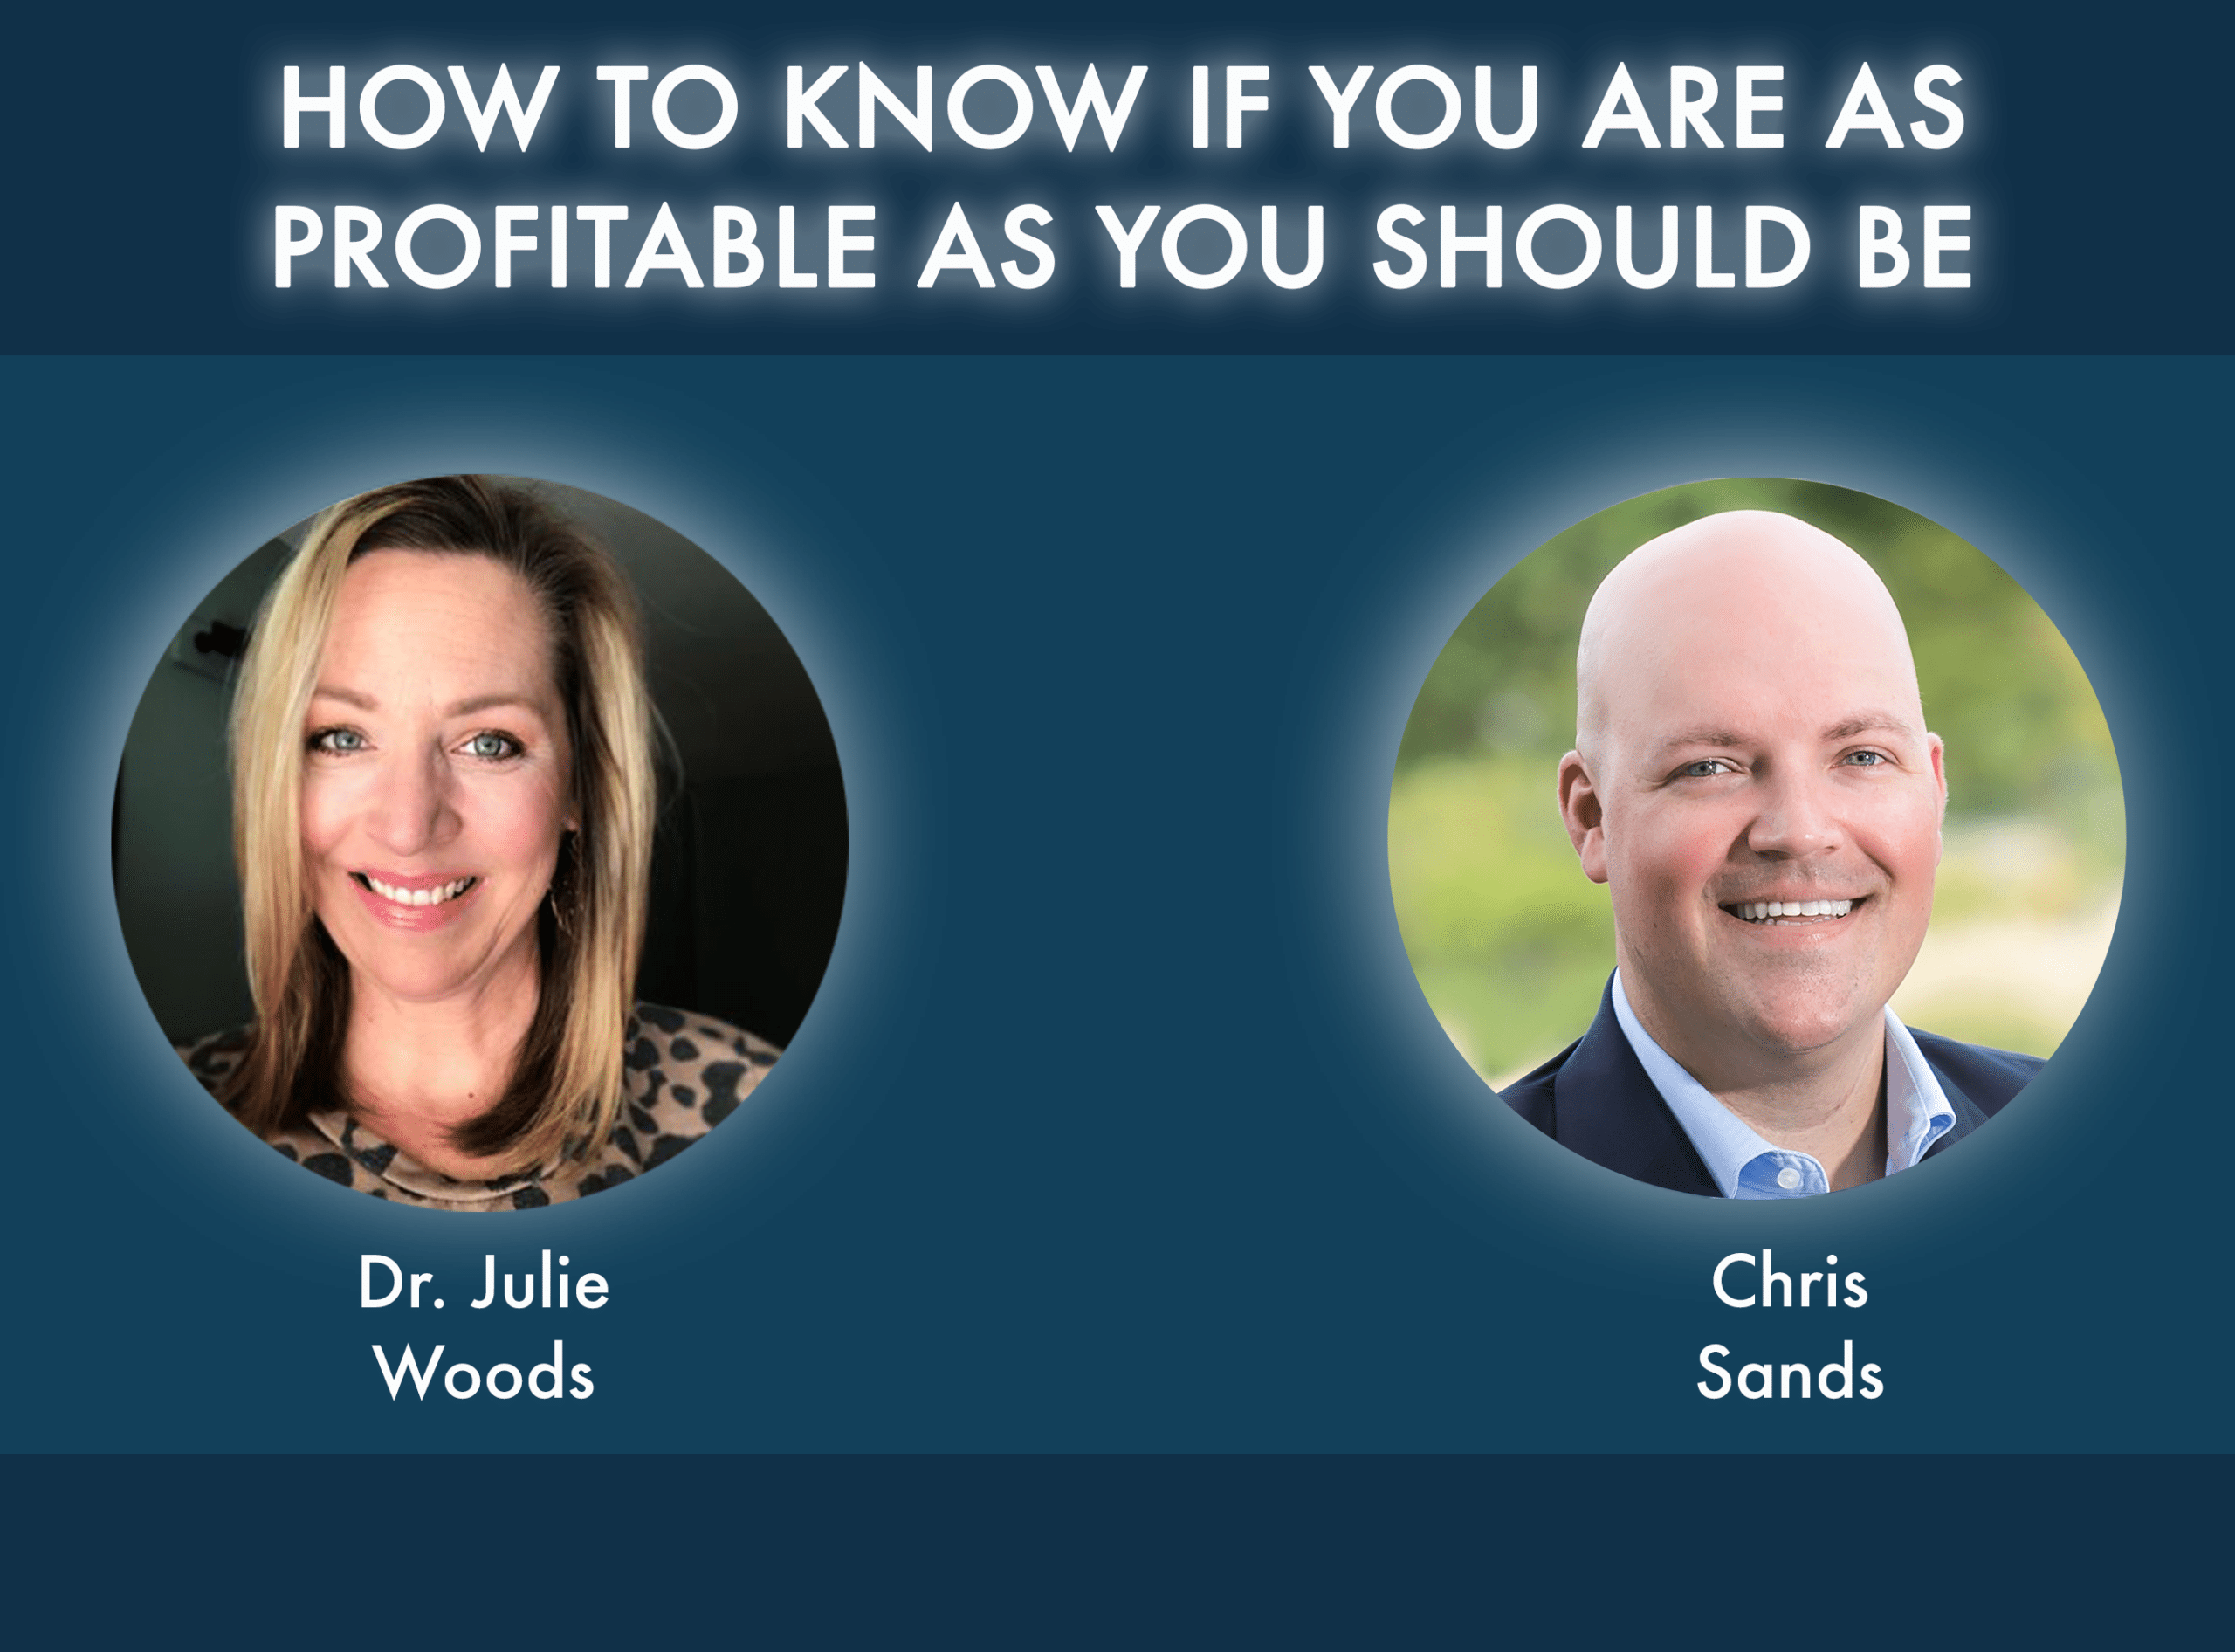 How to Know if You are as Profitable as You Should Be